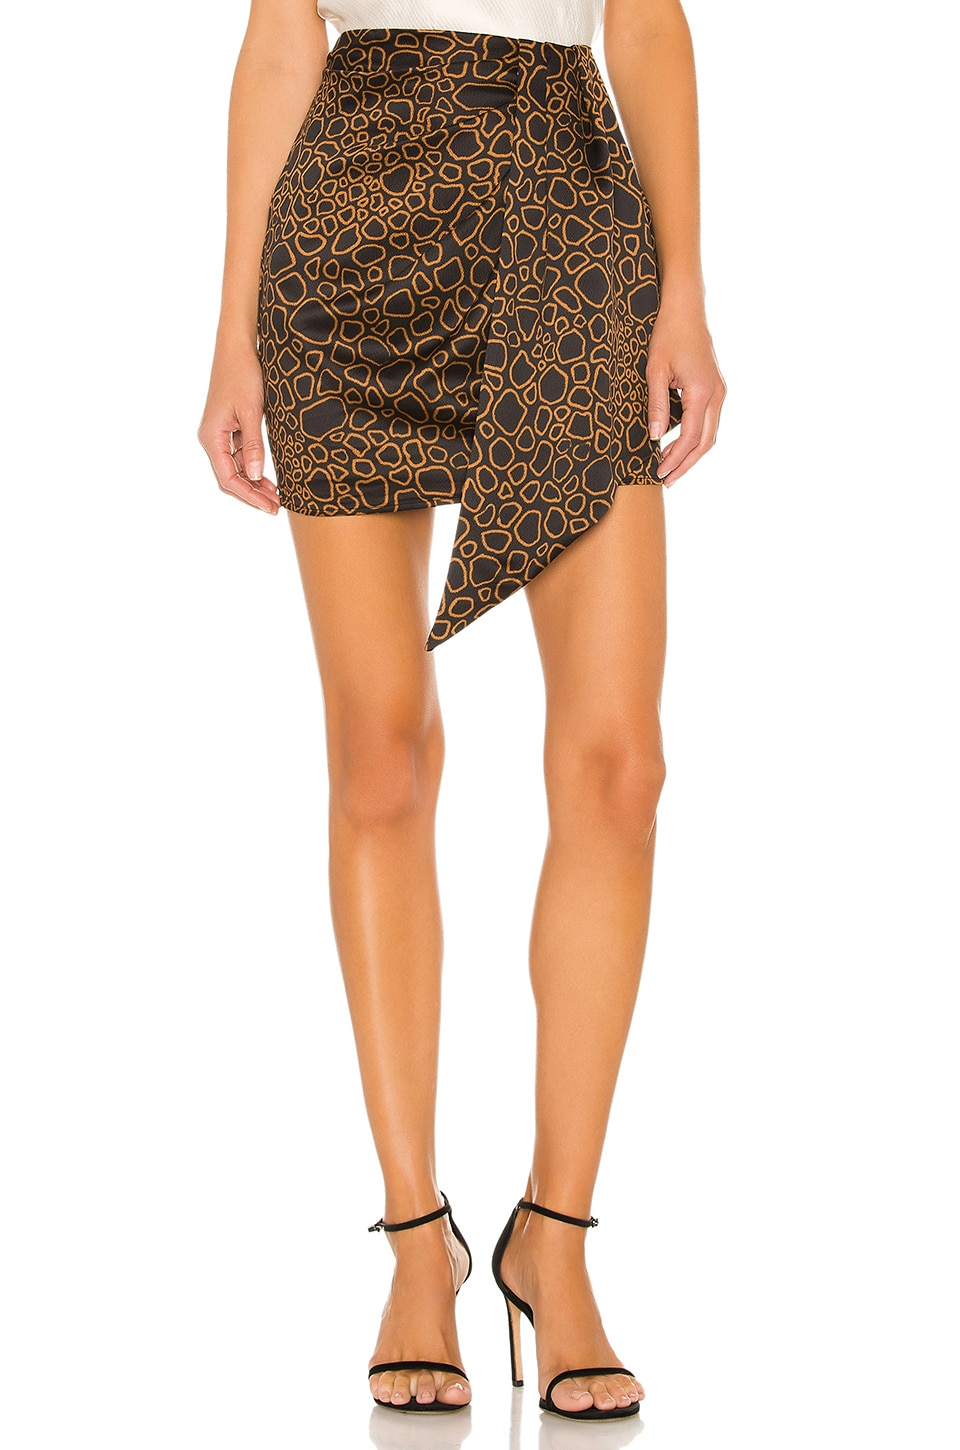 House of Harlow 1960 x REVOLVE Daria Skirt in Noir Abstract